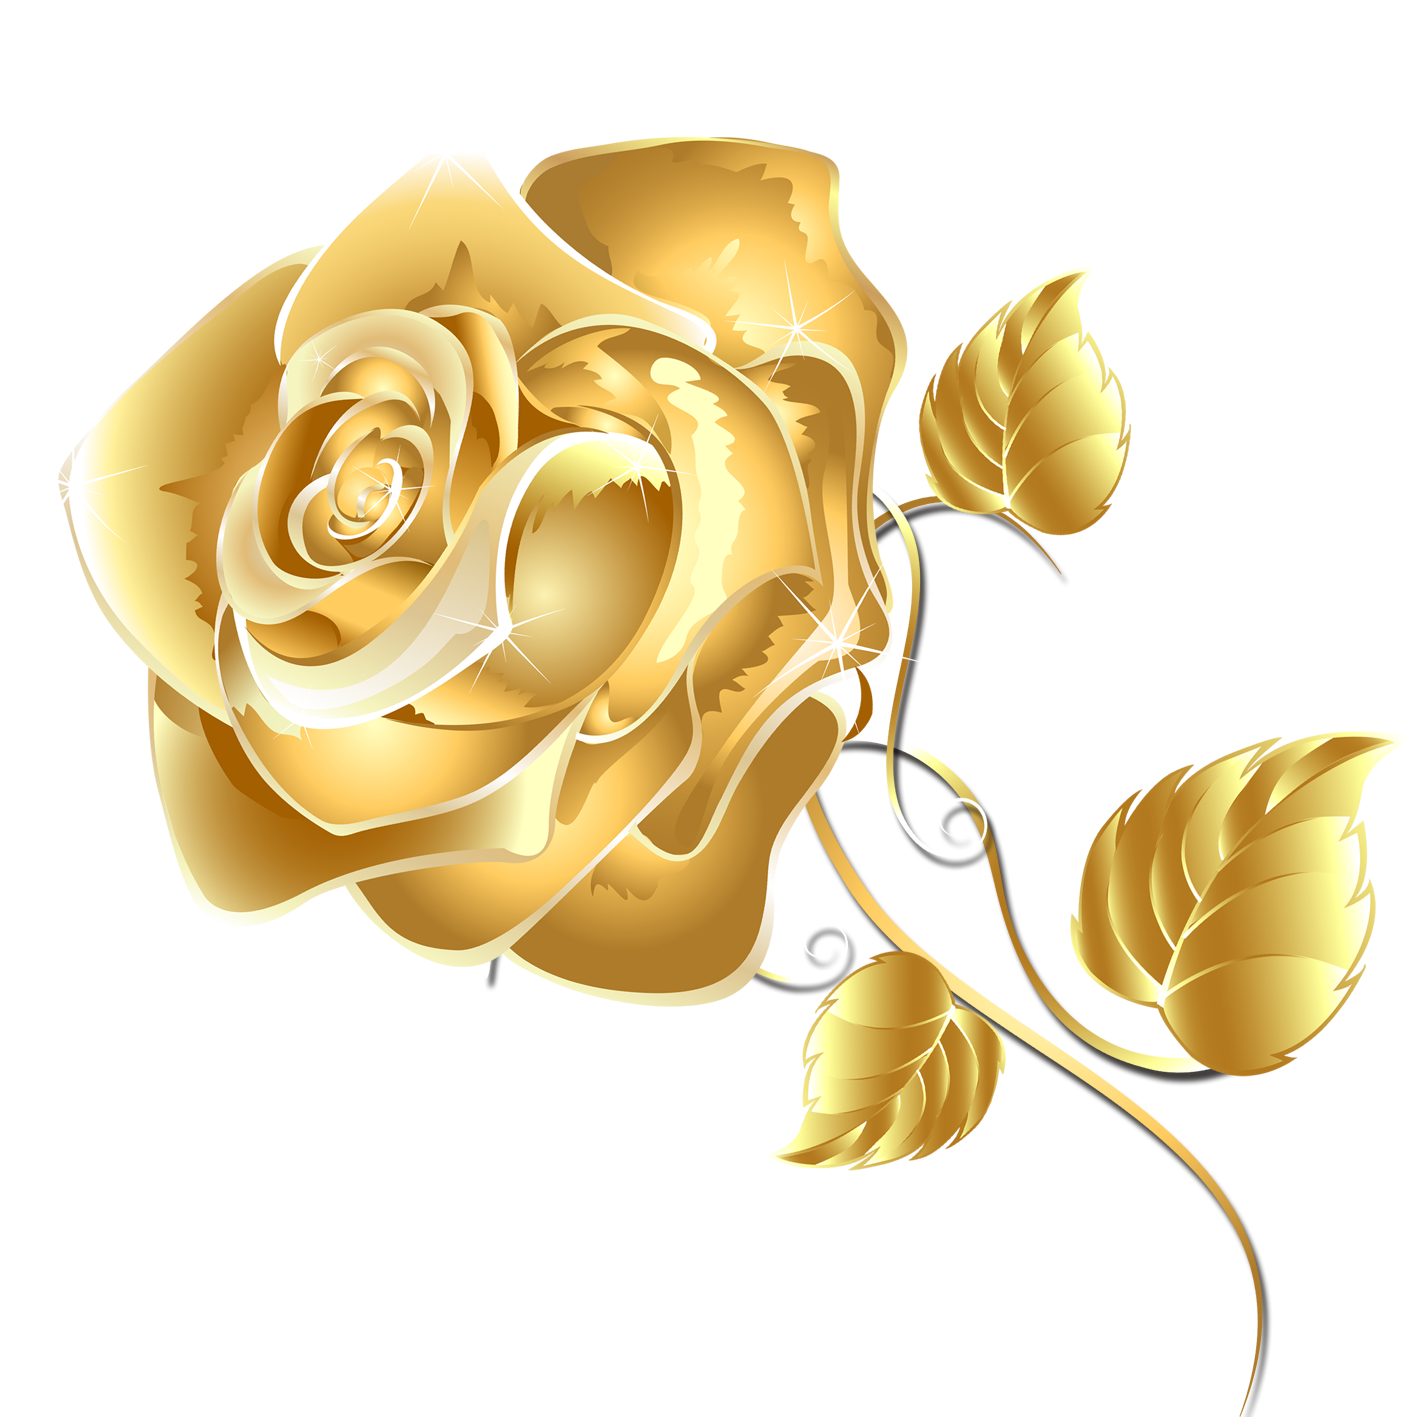 Rose gold flower png. Fashion free games online